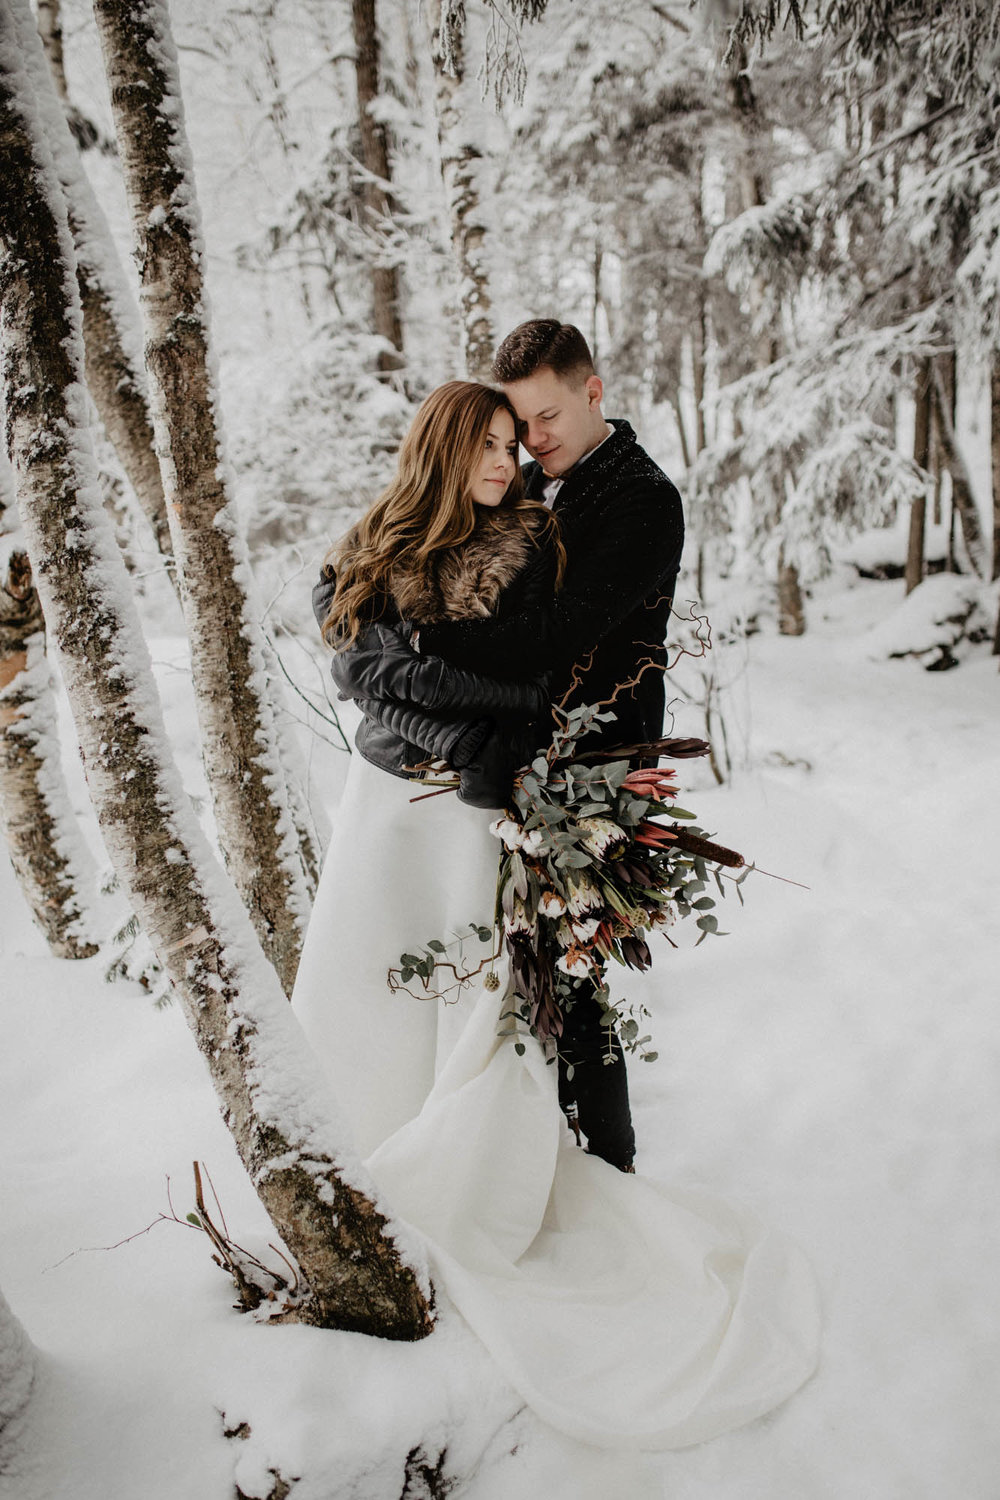 ashley_schulman_photography-winter_wedding_tampere-20.jpg